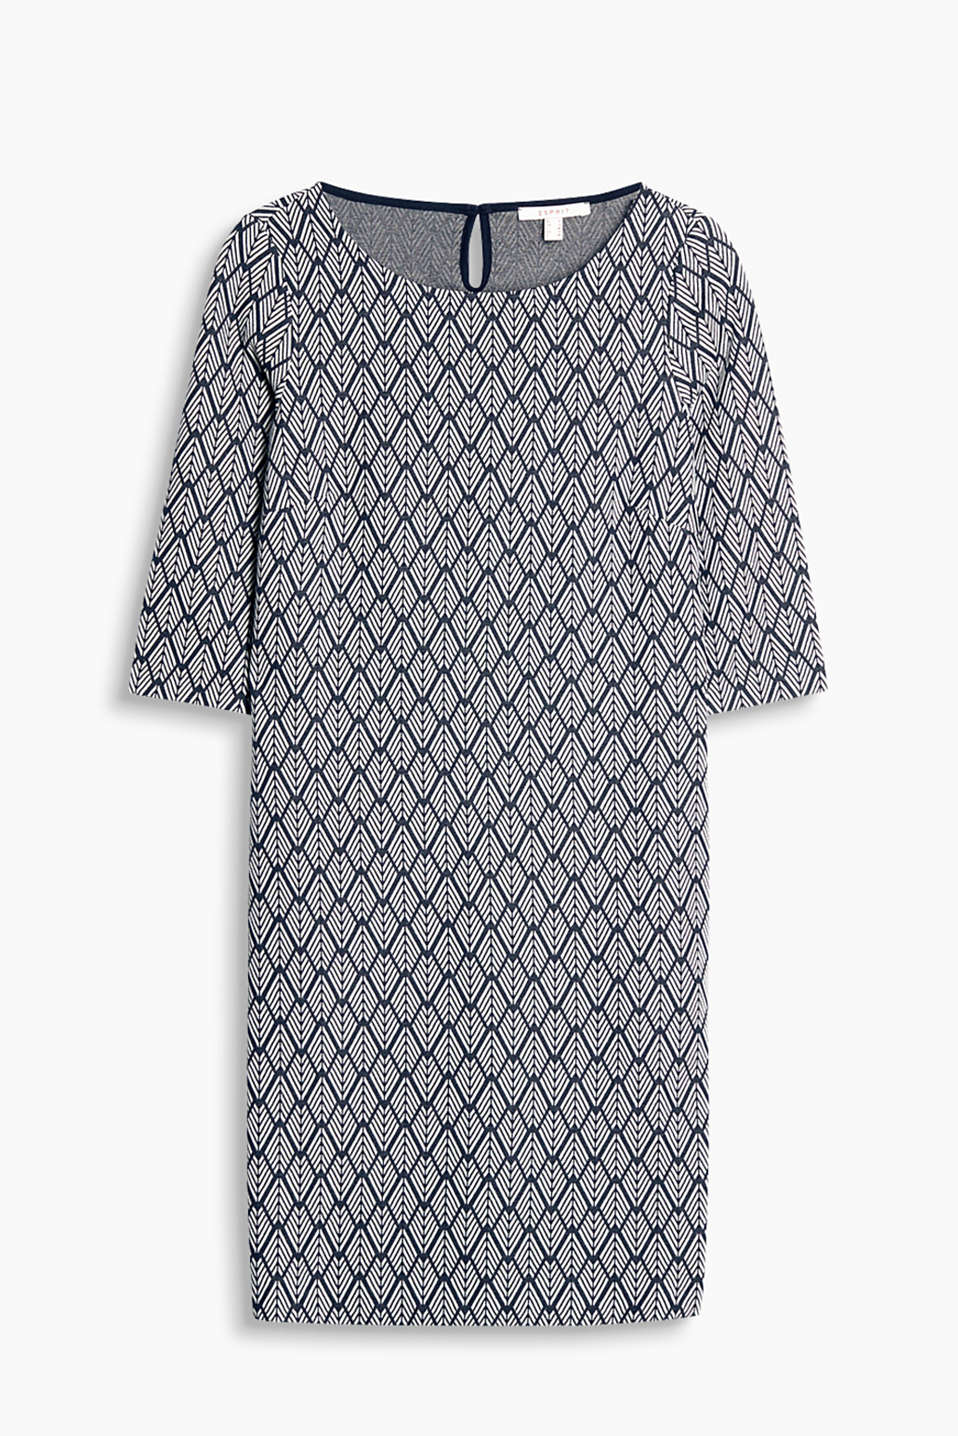 Fashionable jacquard dress made of thick stretch jersey